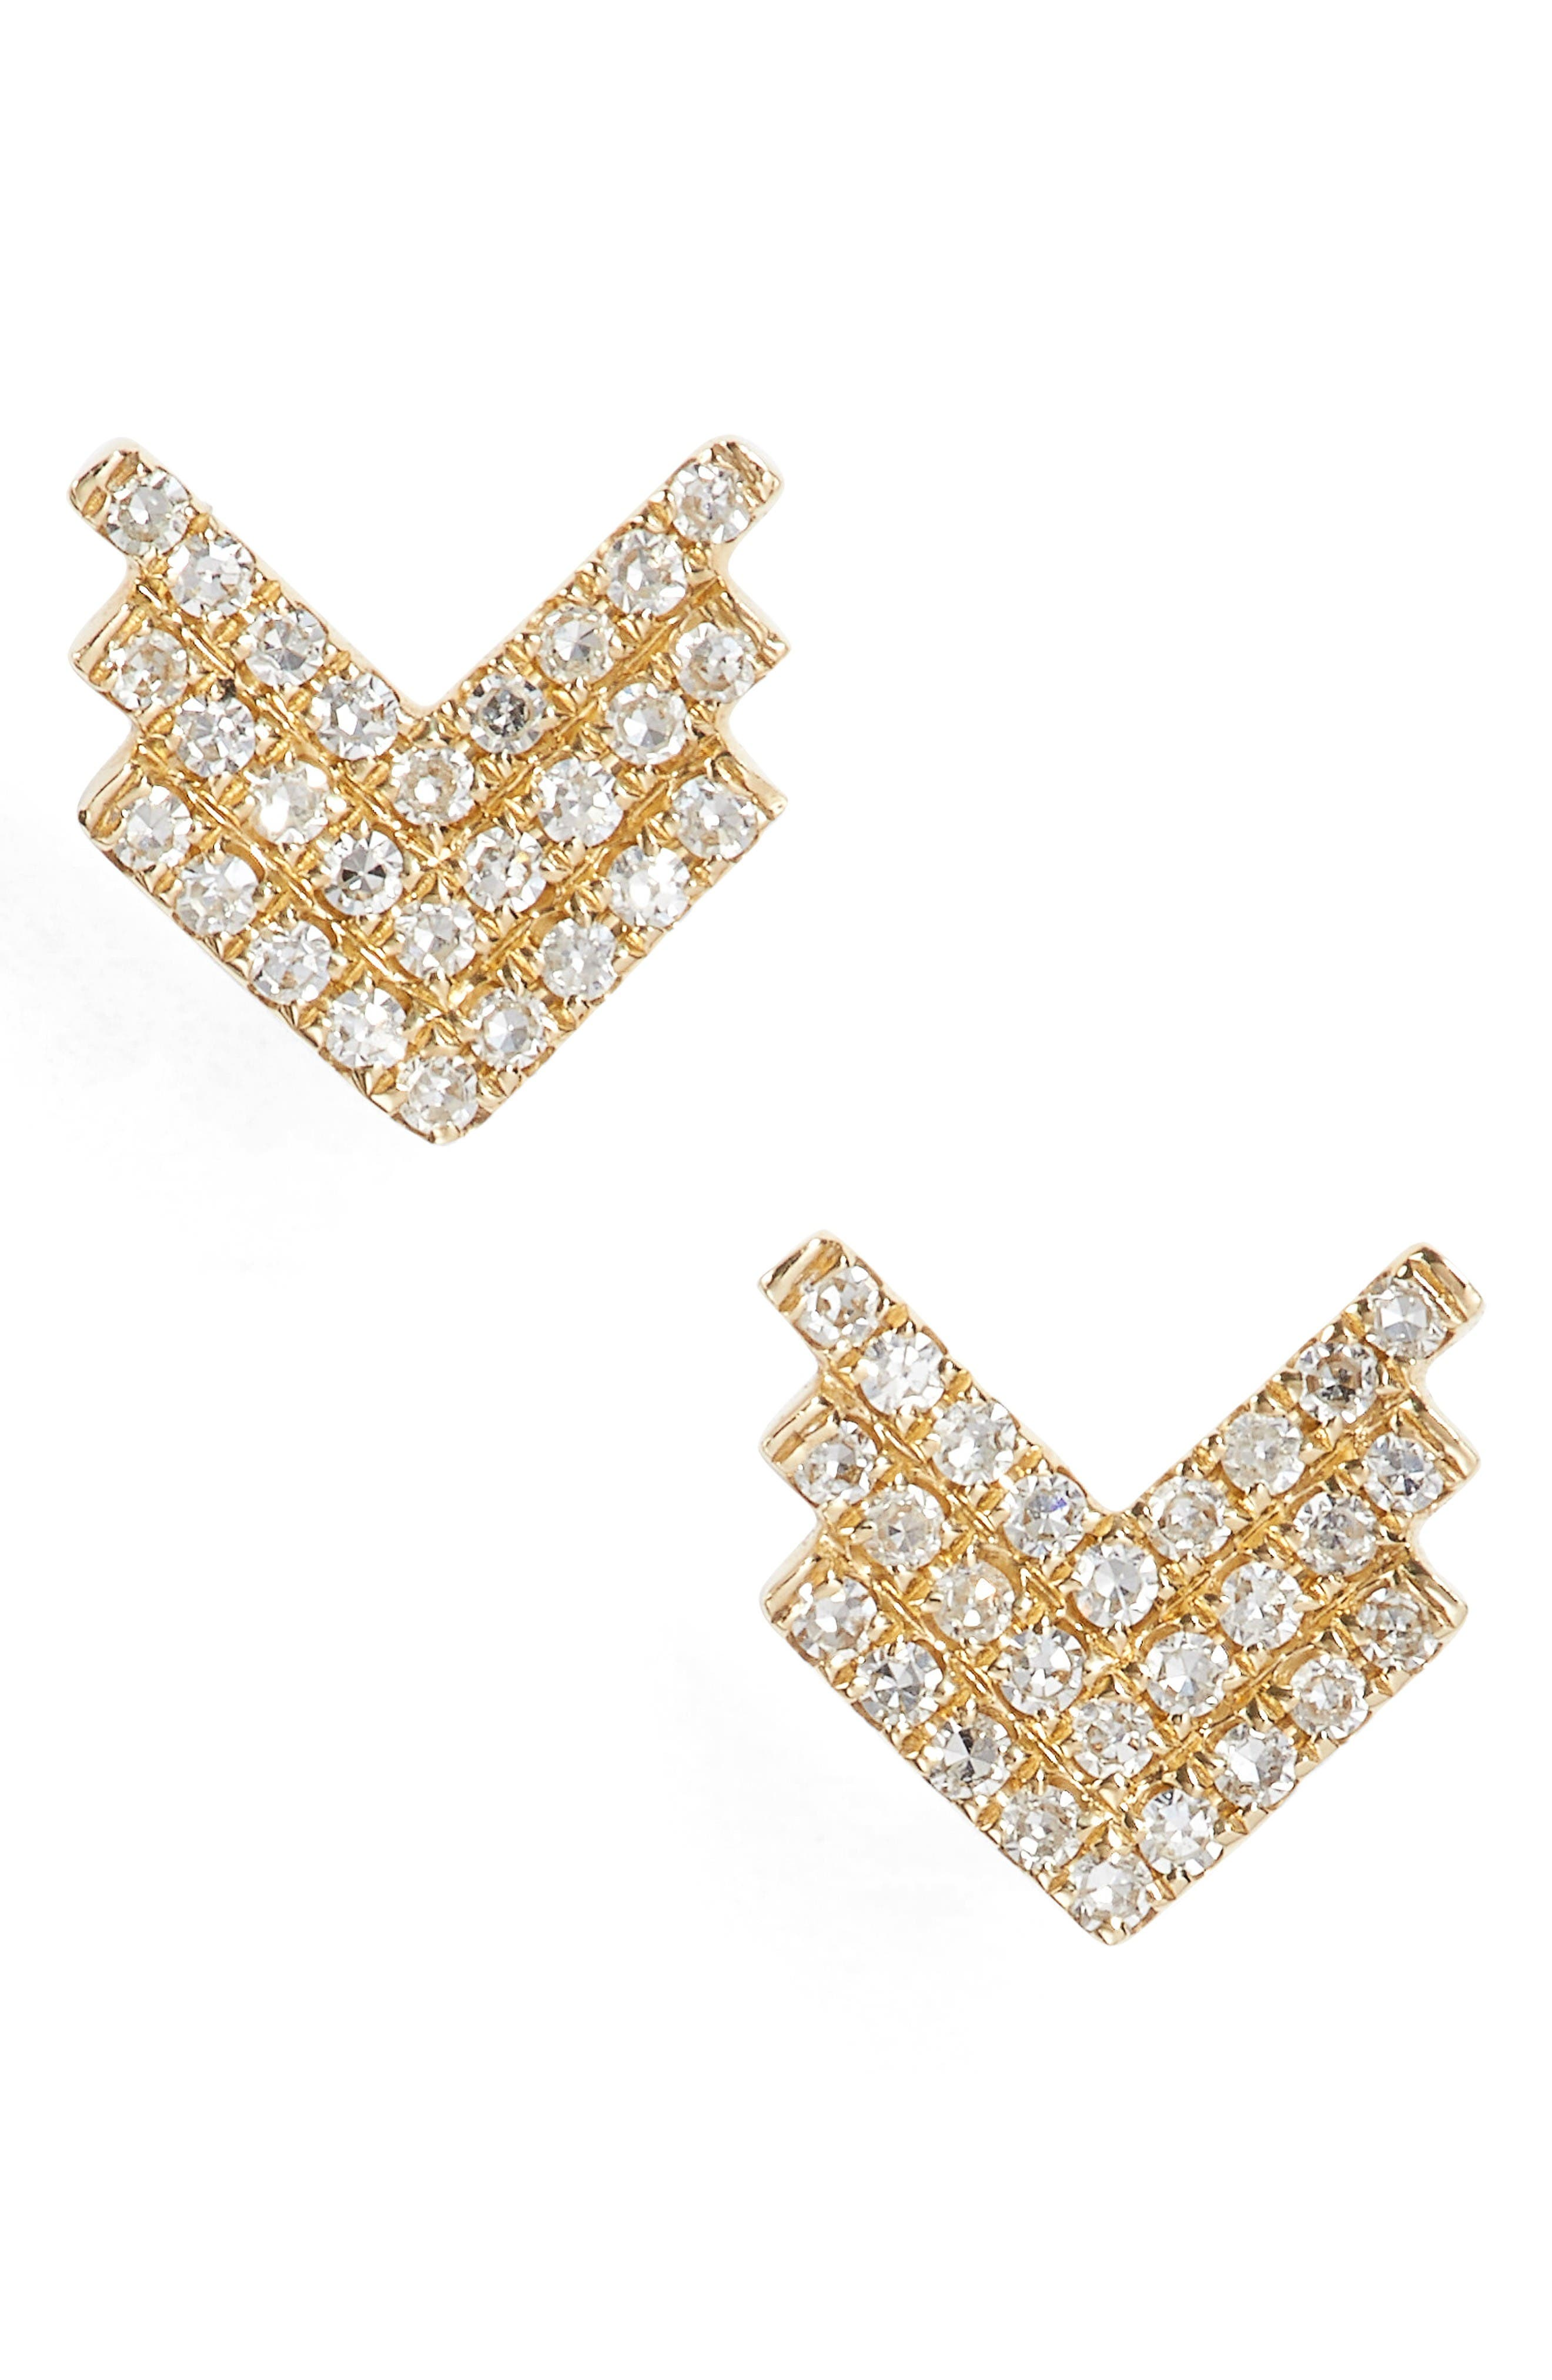 Main Image - EF COLLECTION Shield Diamond Stud Earrings